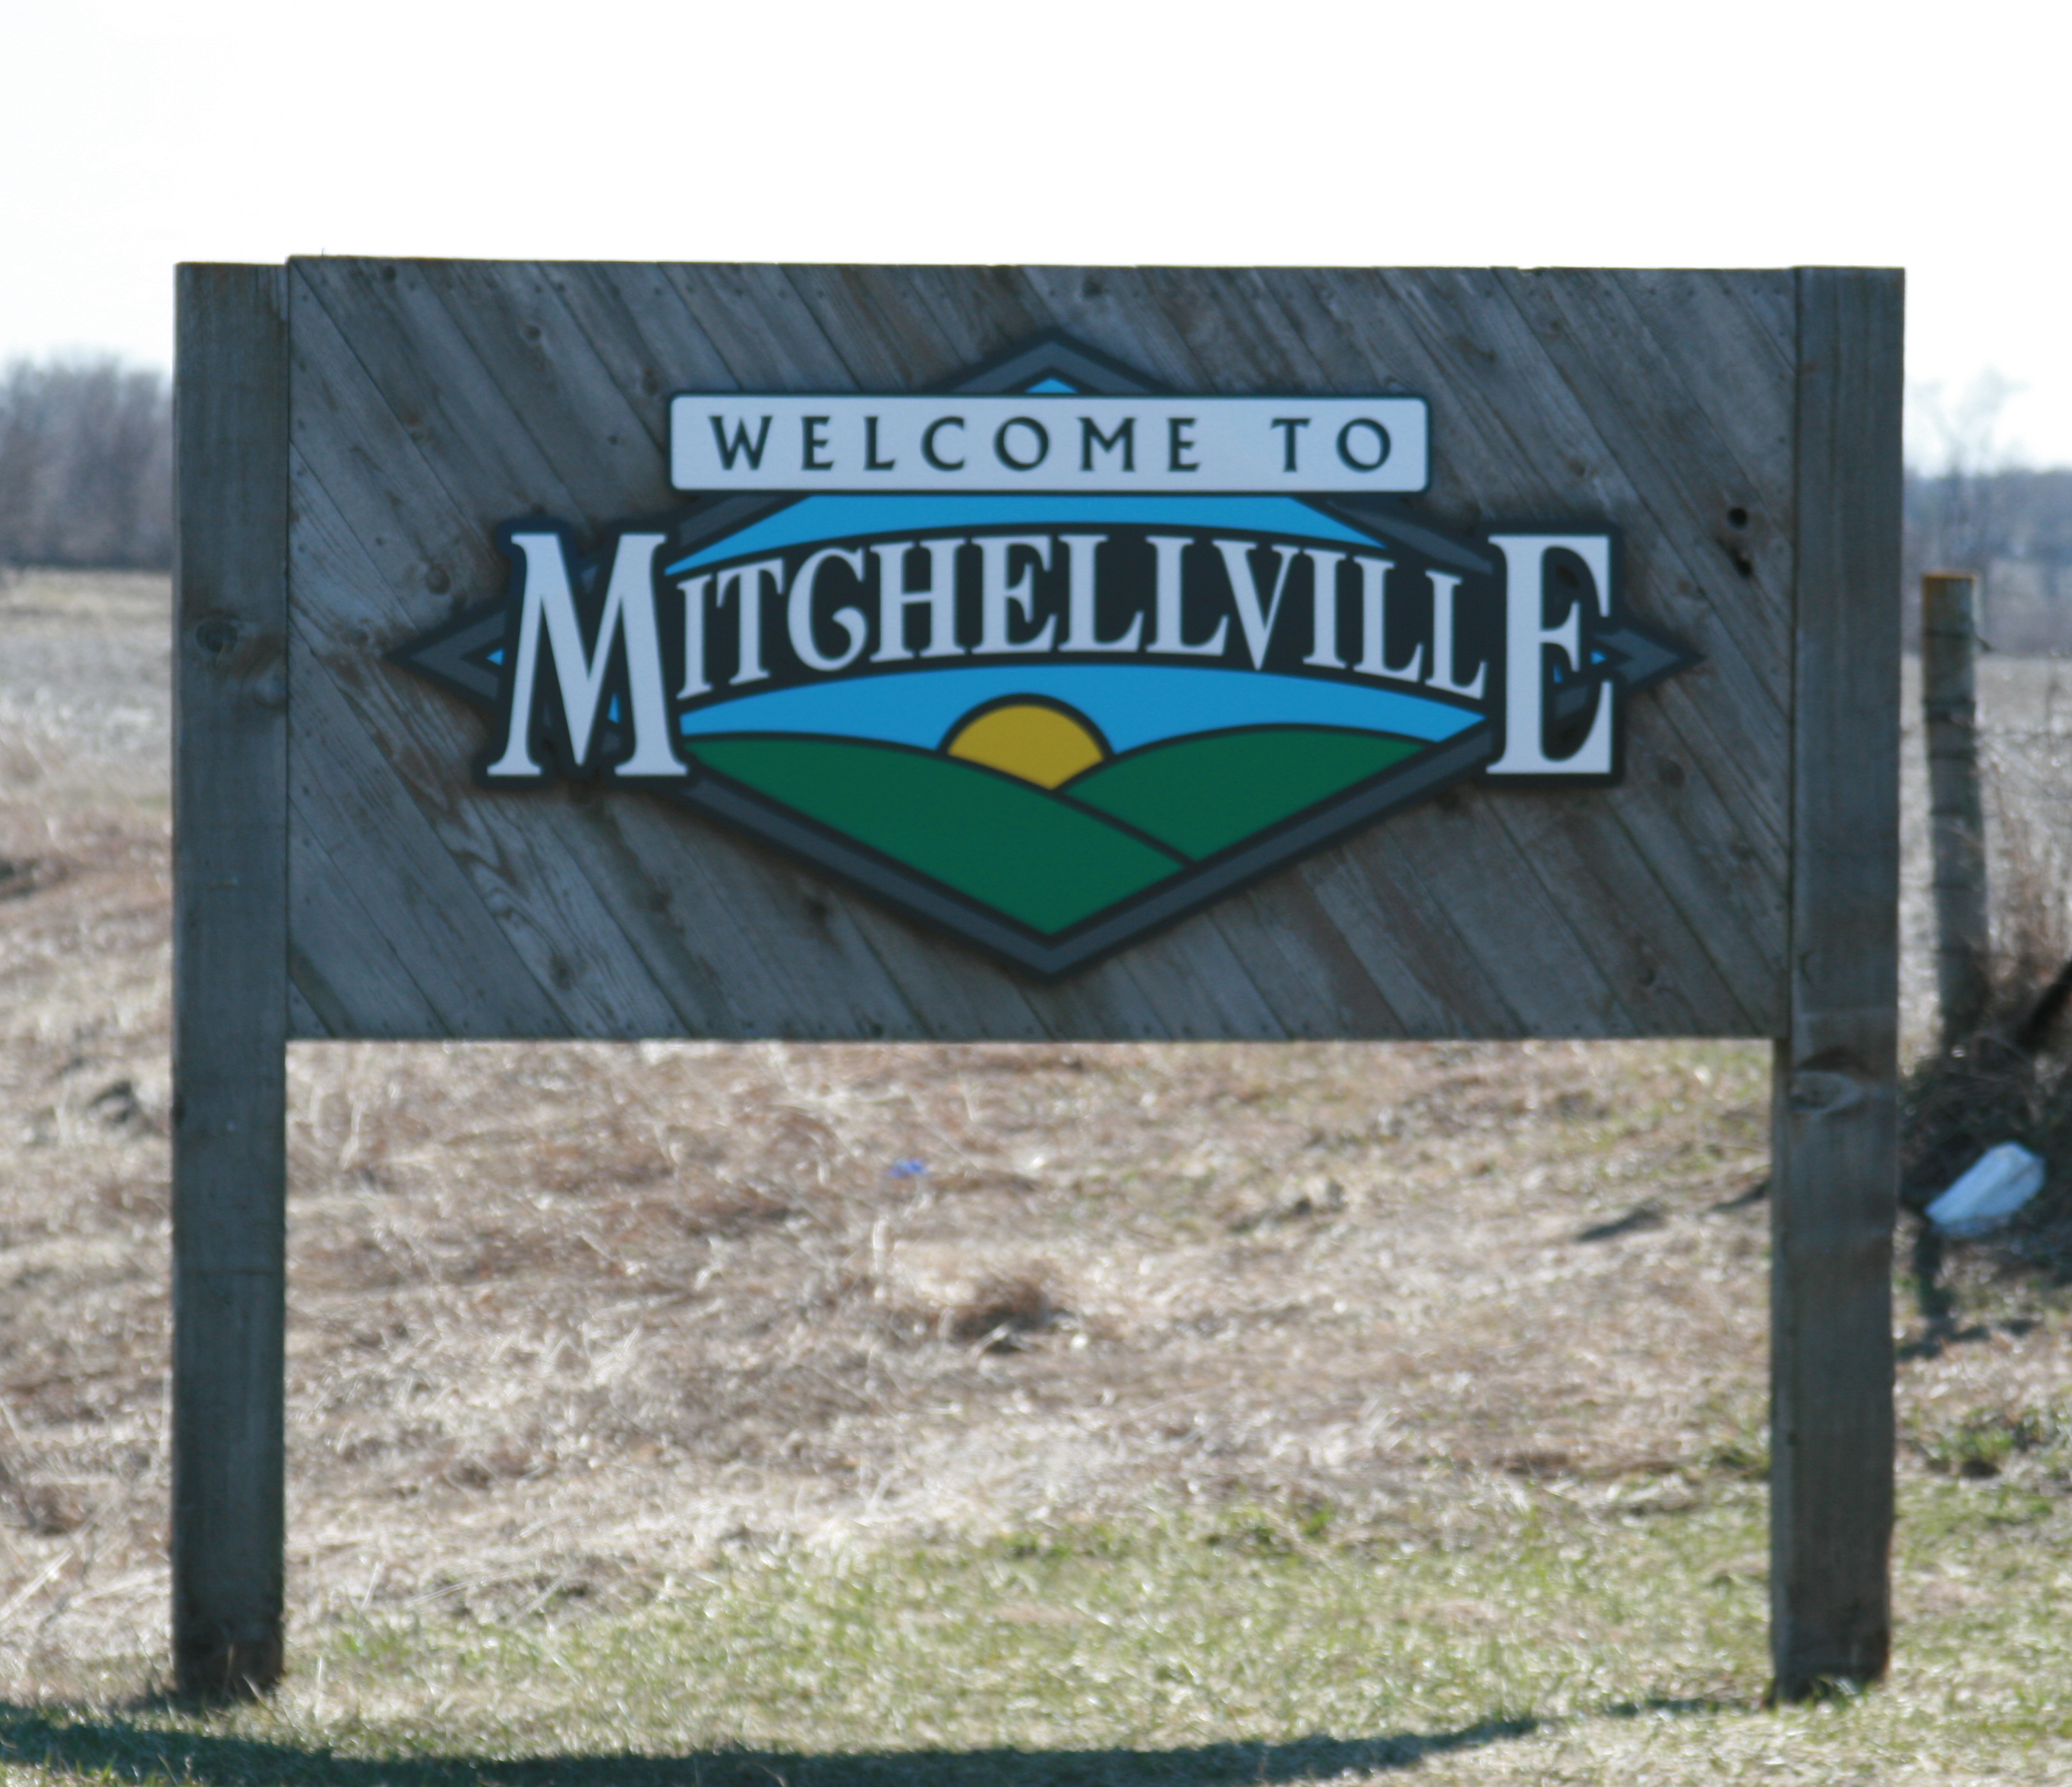 mitchellville dating Whether you want just to flirt or chat with girls from mitchellville or find your real soul mate,  online dating,.